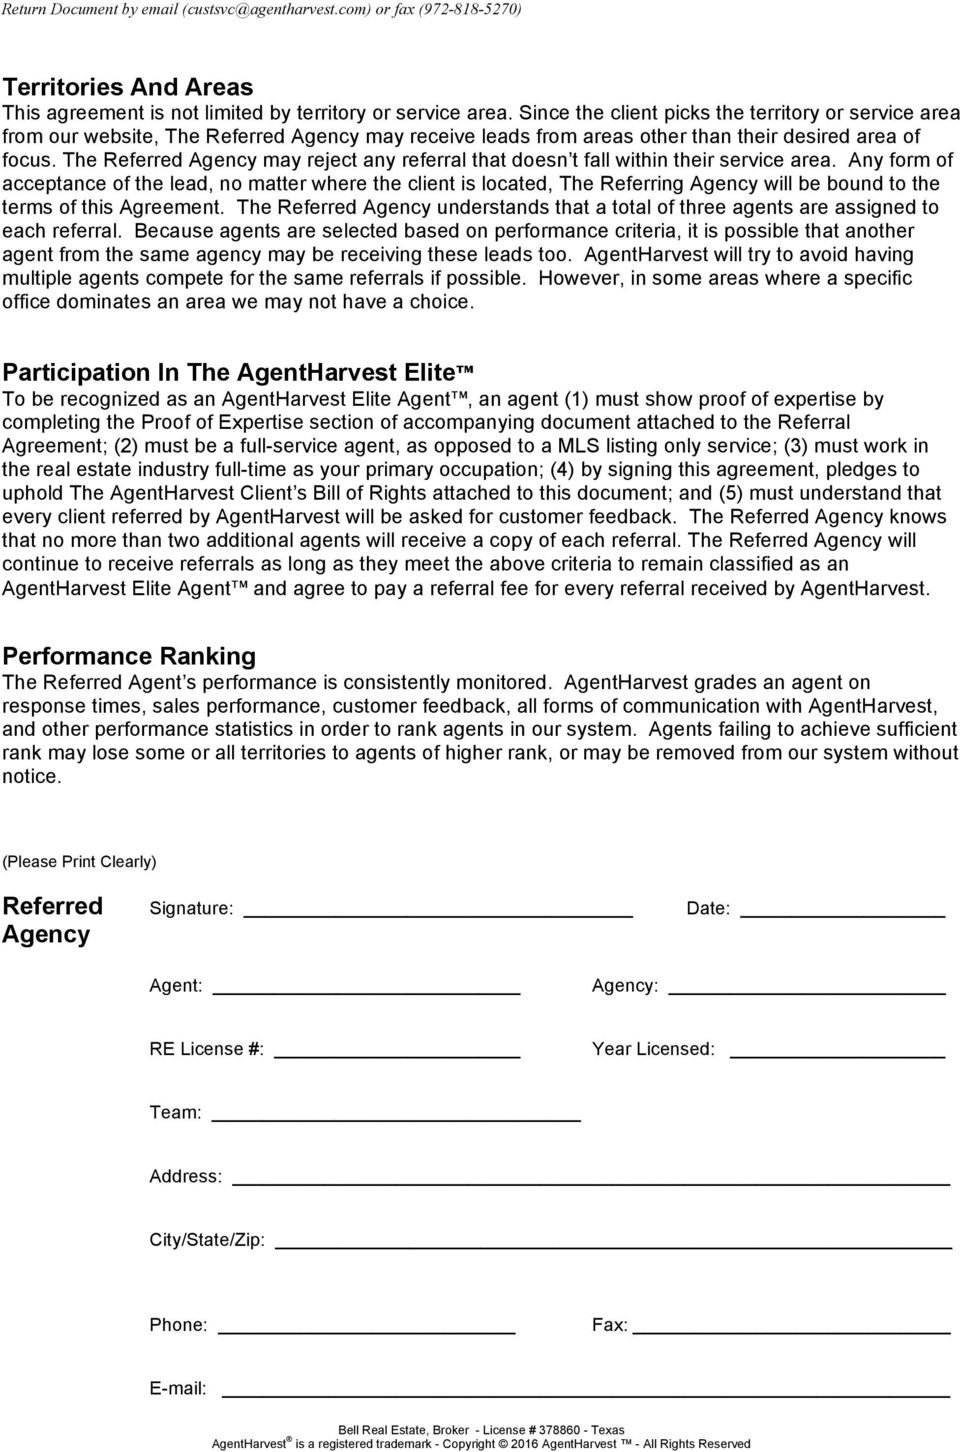 Real Estate Referral form Agentharvest Elite Agent Real Estate Client Referral